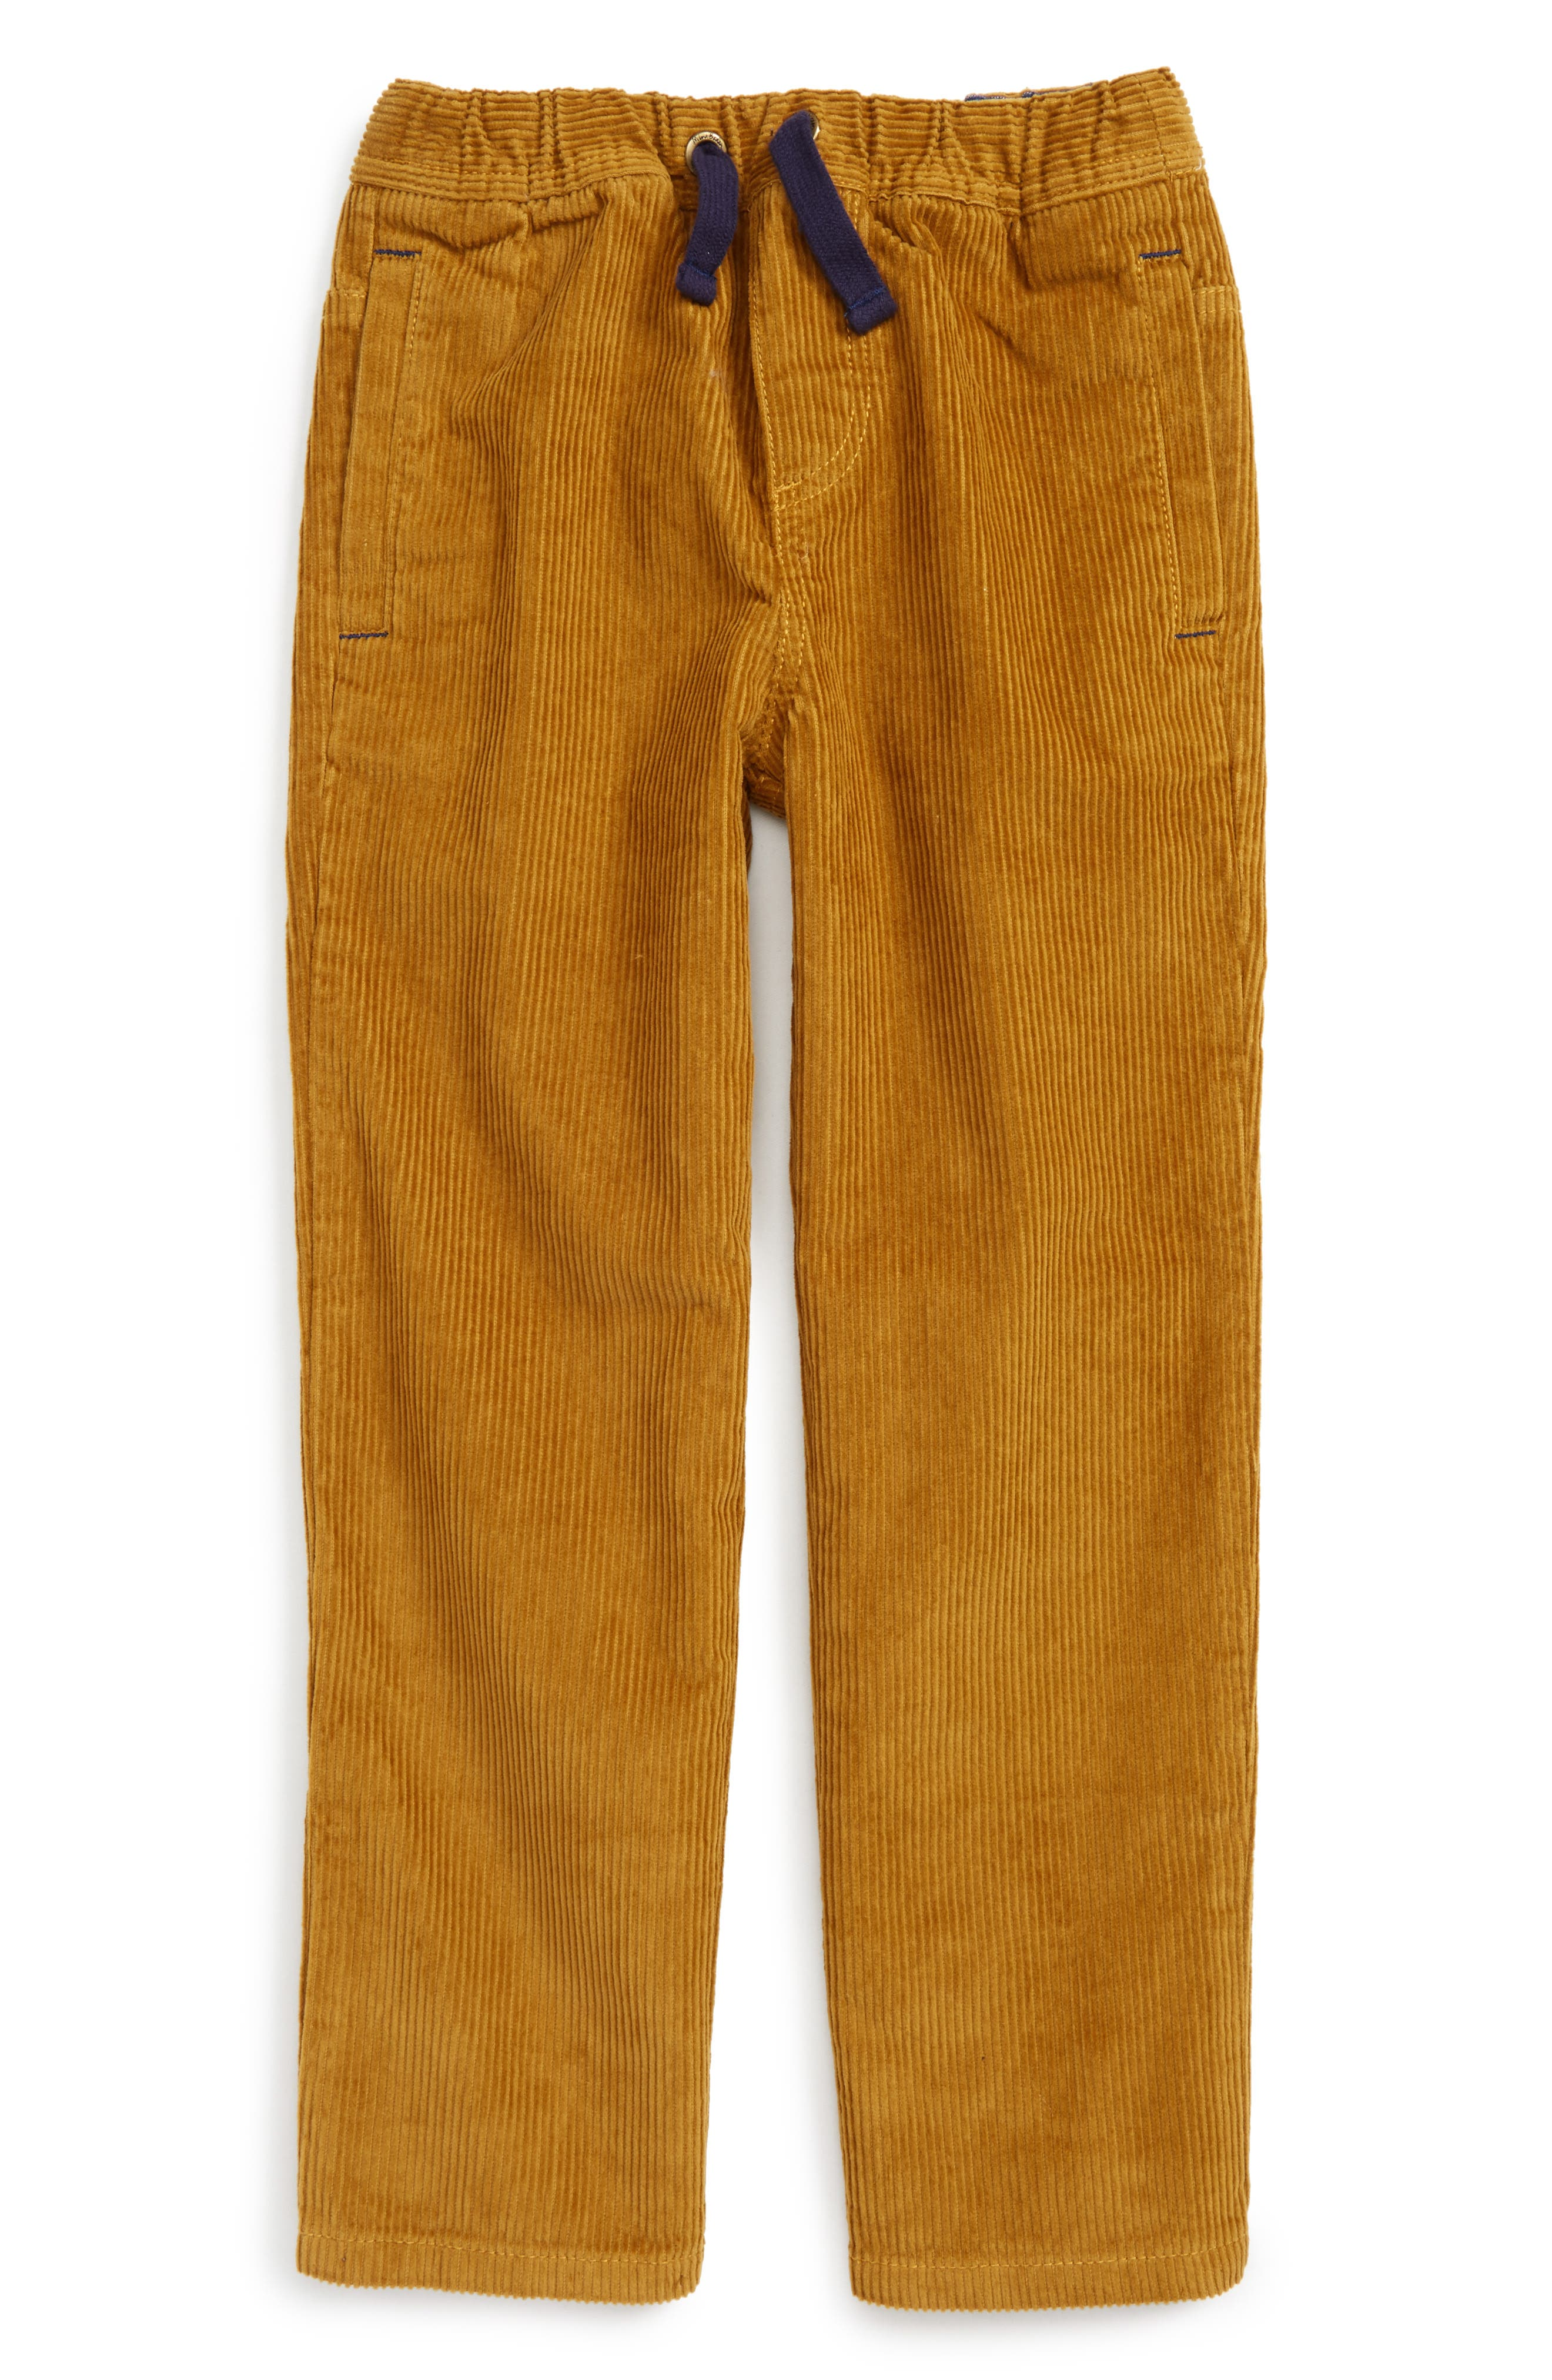 Mini Boden Corduroy Pants (Toddler Boys, Little Boys & Big Boys)